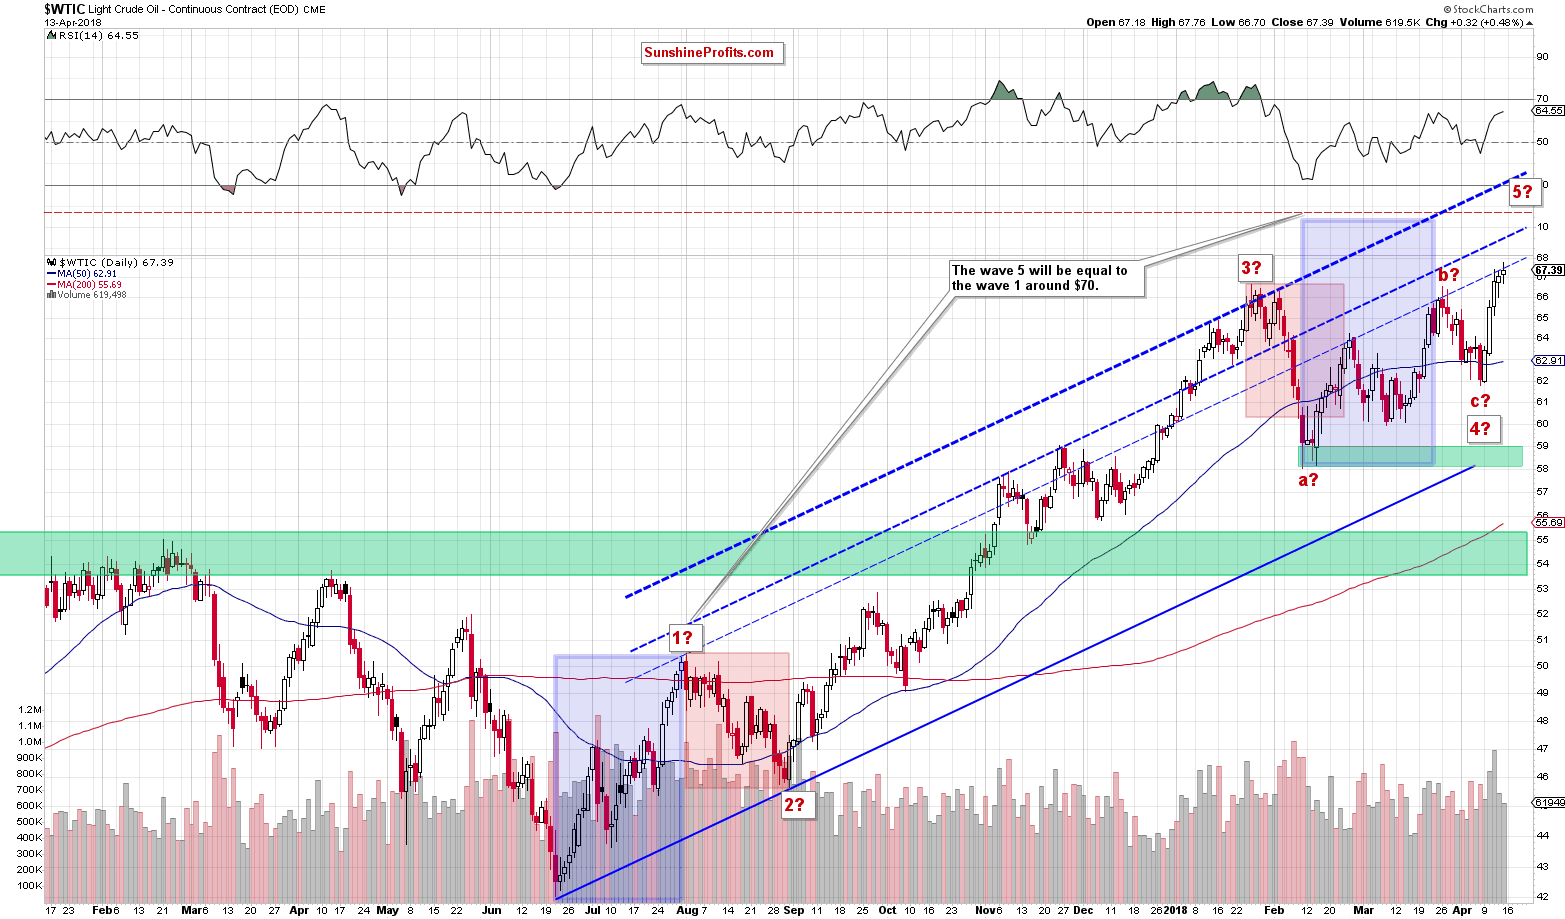 Crude oil daily chart WTIC target